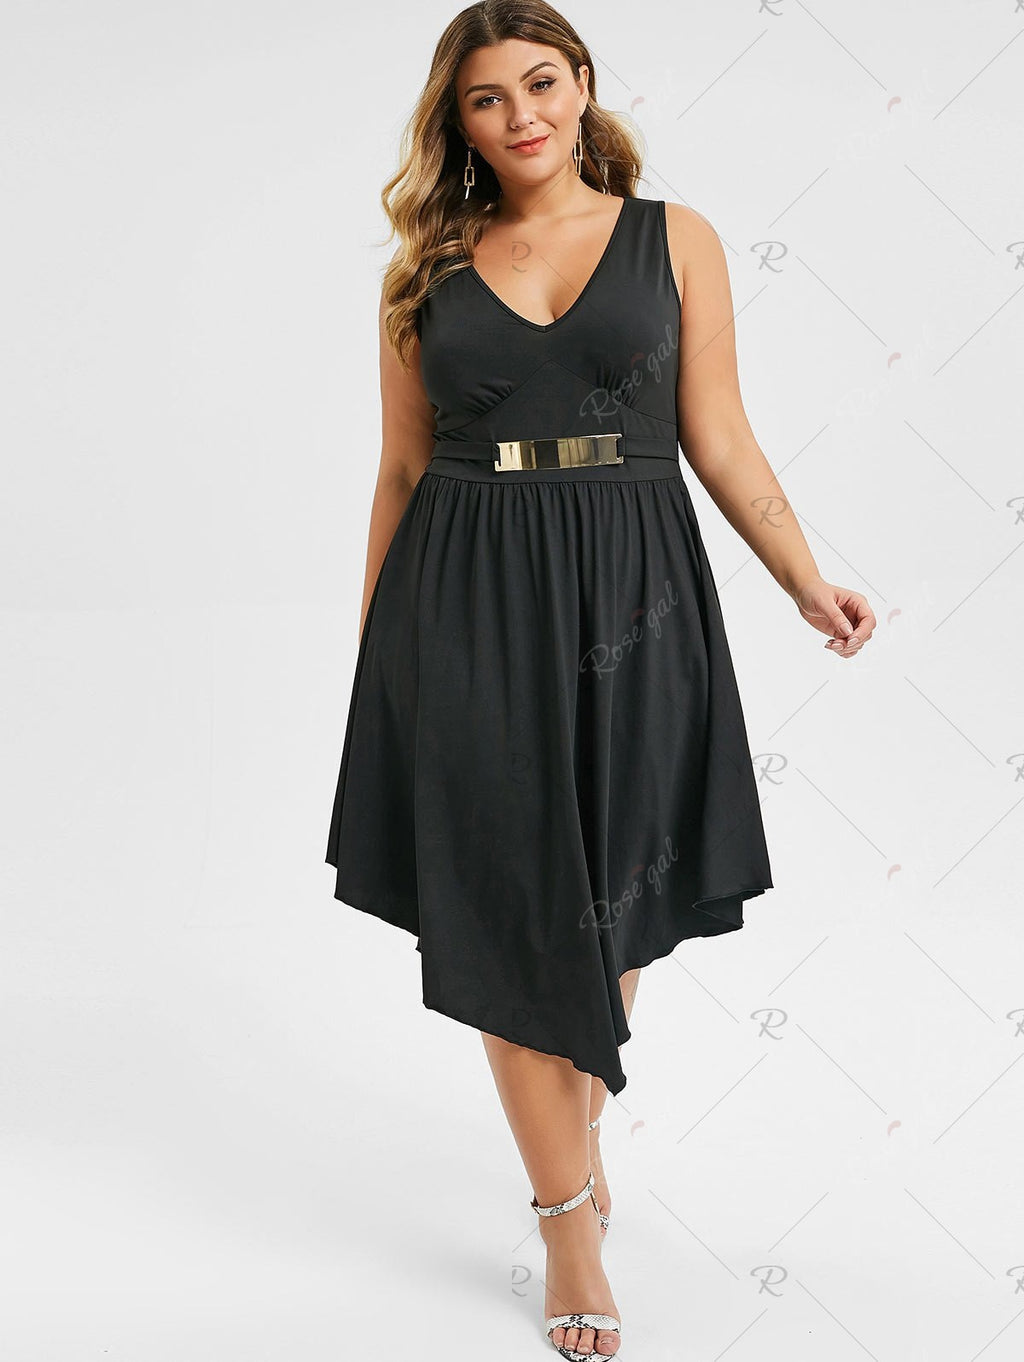 Plus Size Plunging Neck Asymmetrical Sleeveless Dress